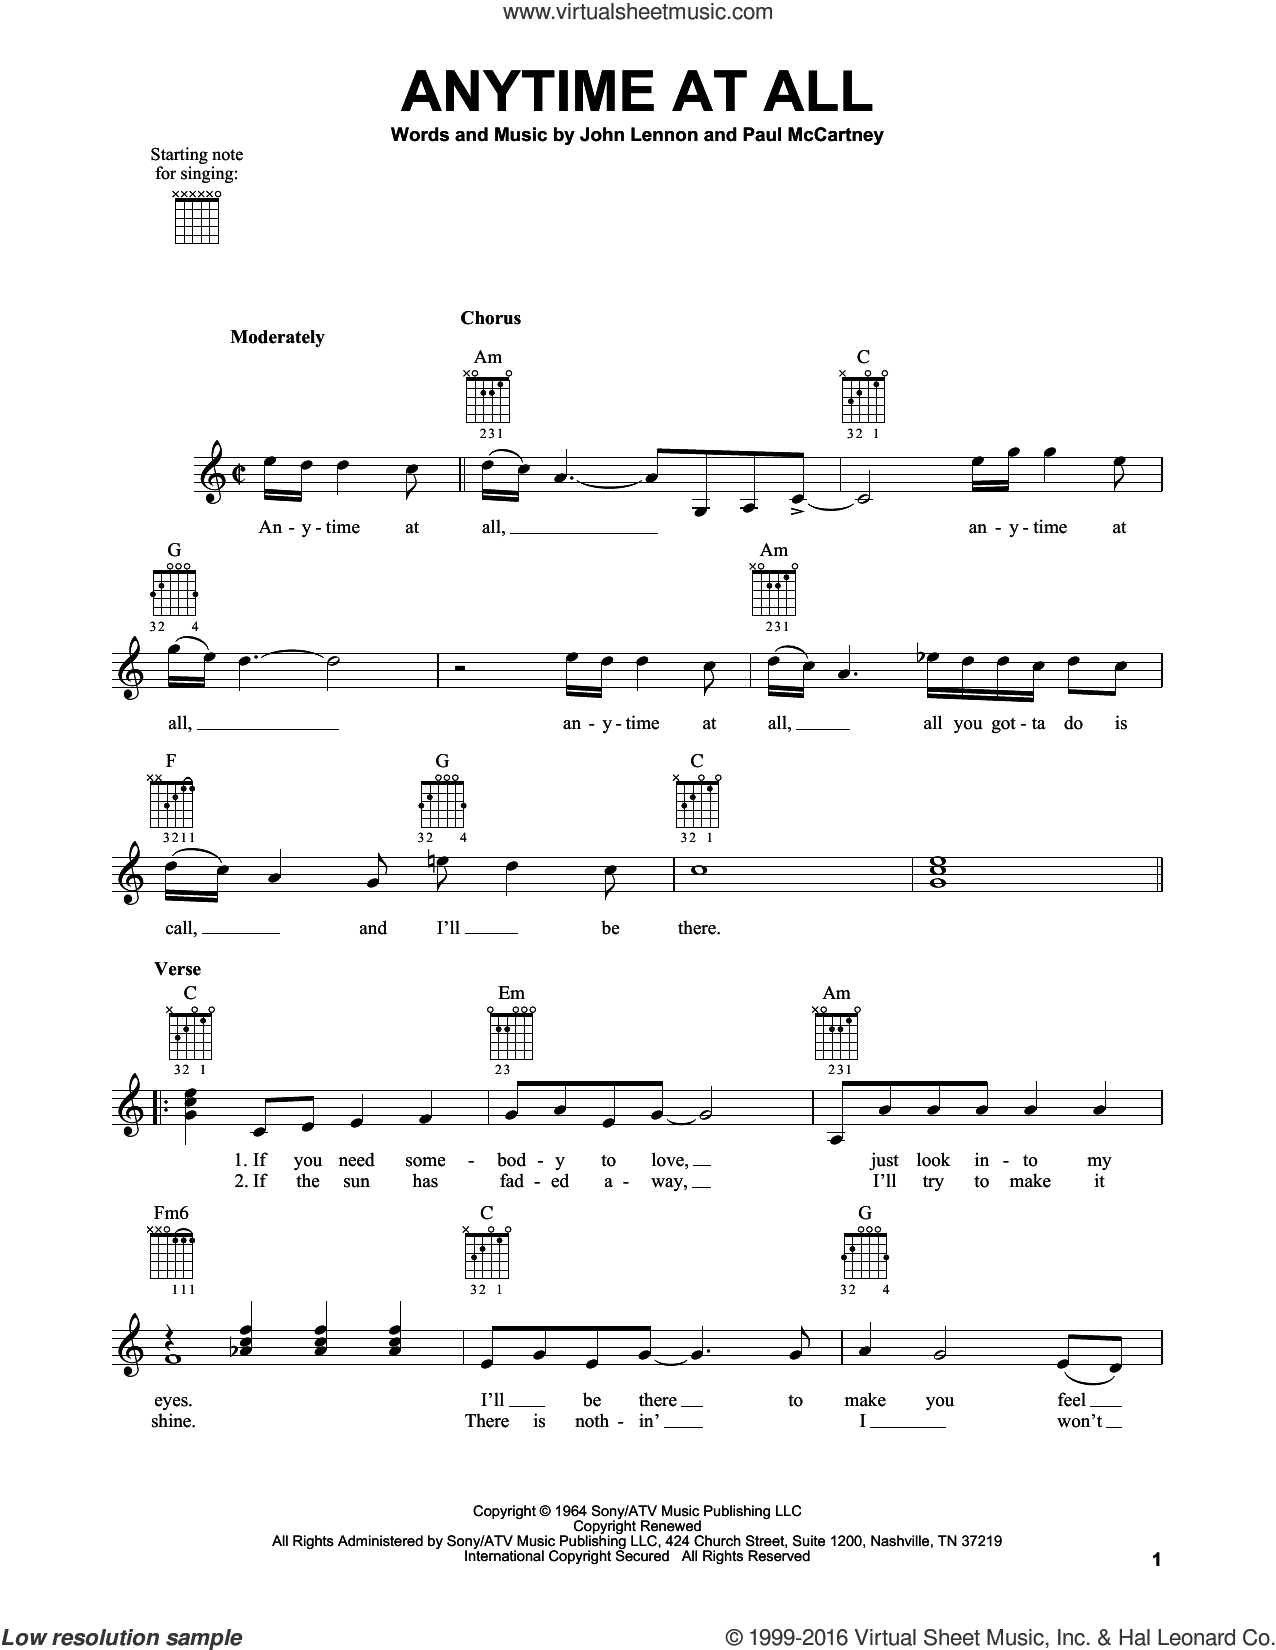 Anytime At All sheet music for guitar solo (chords) by The Beatles, John Lennon and Paul McCartney. Score Image Preview.